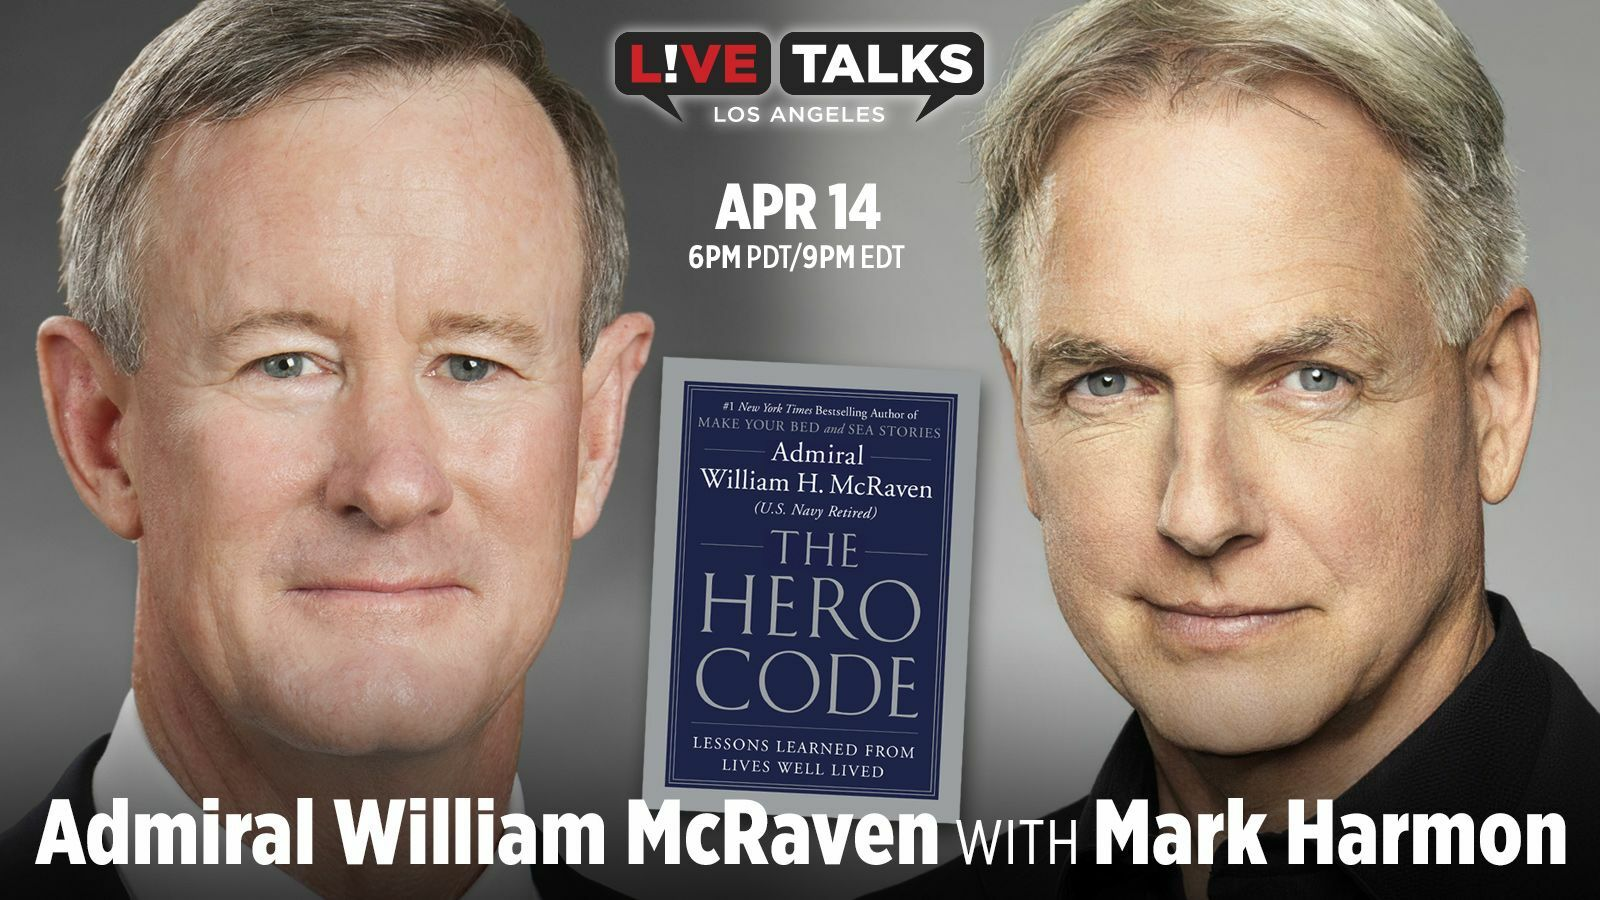 Admiral William H. McRaven with Mark Harmon - Online